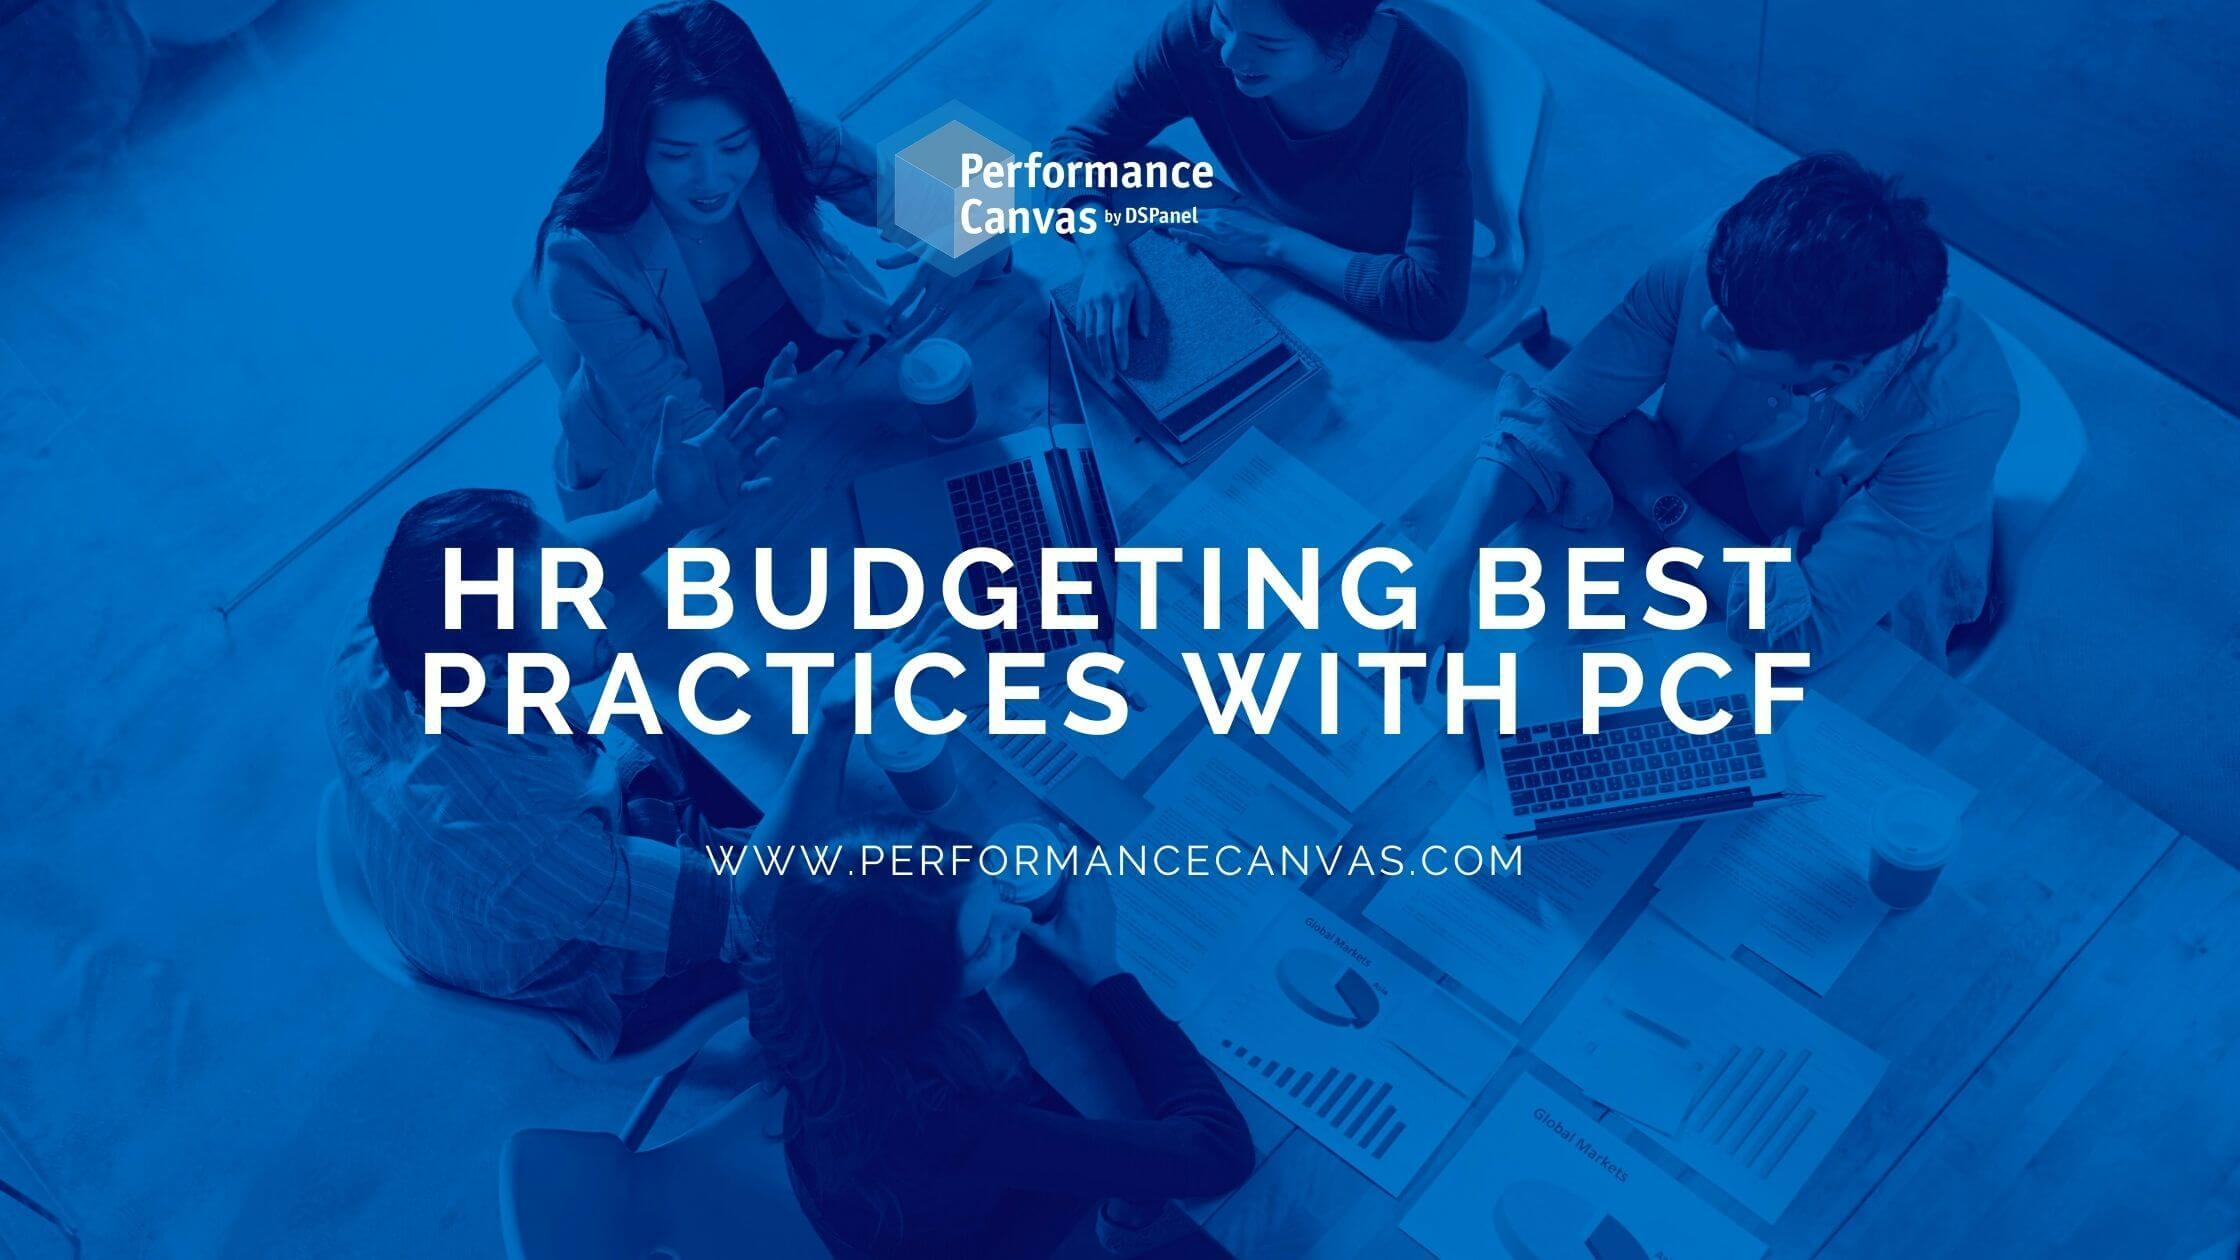 hr budgeting practices